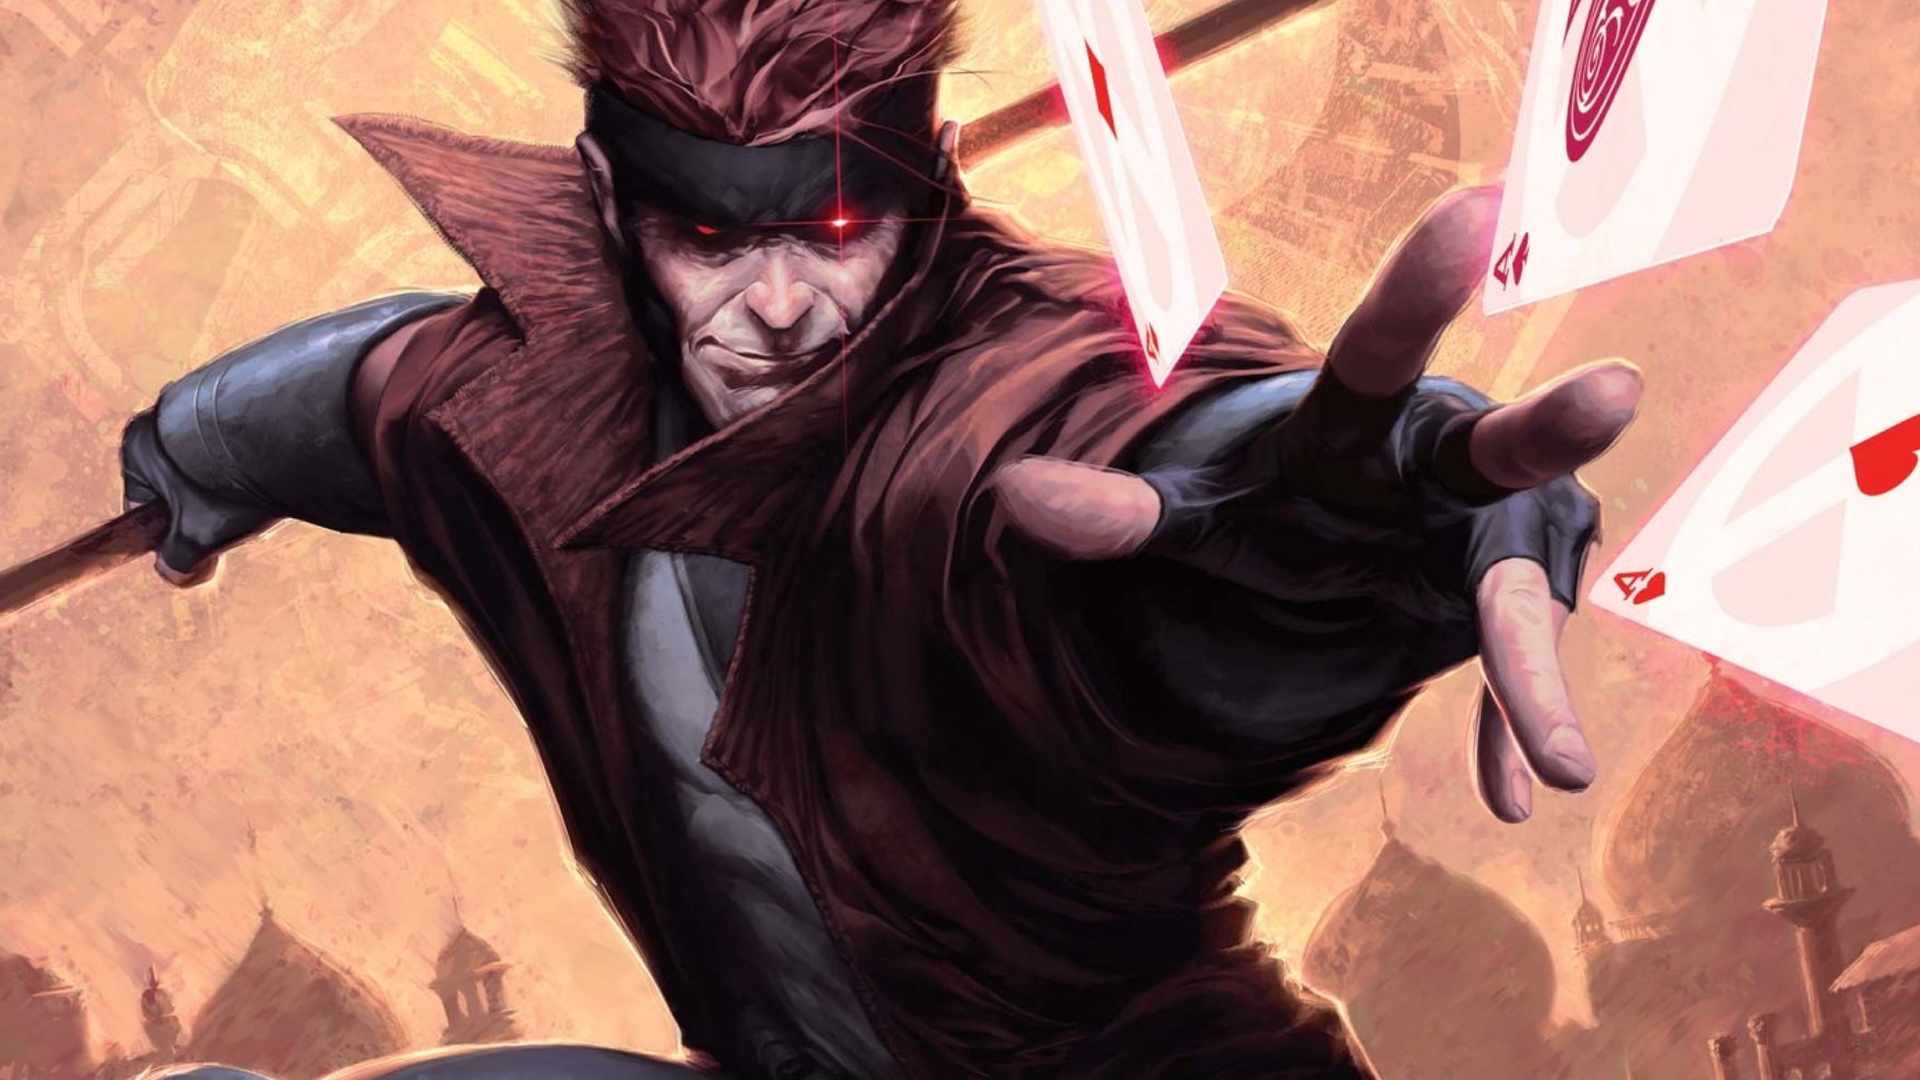 channing-tatums-gambit-film-officially-canceled-by-marvel-and-disney-social.jpg